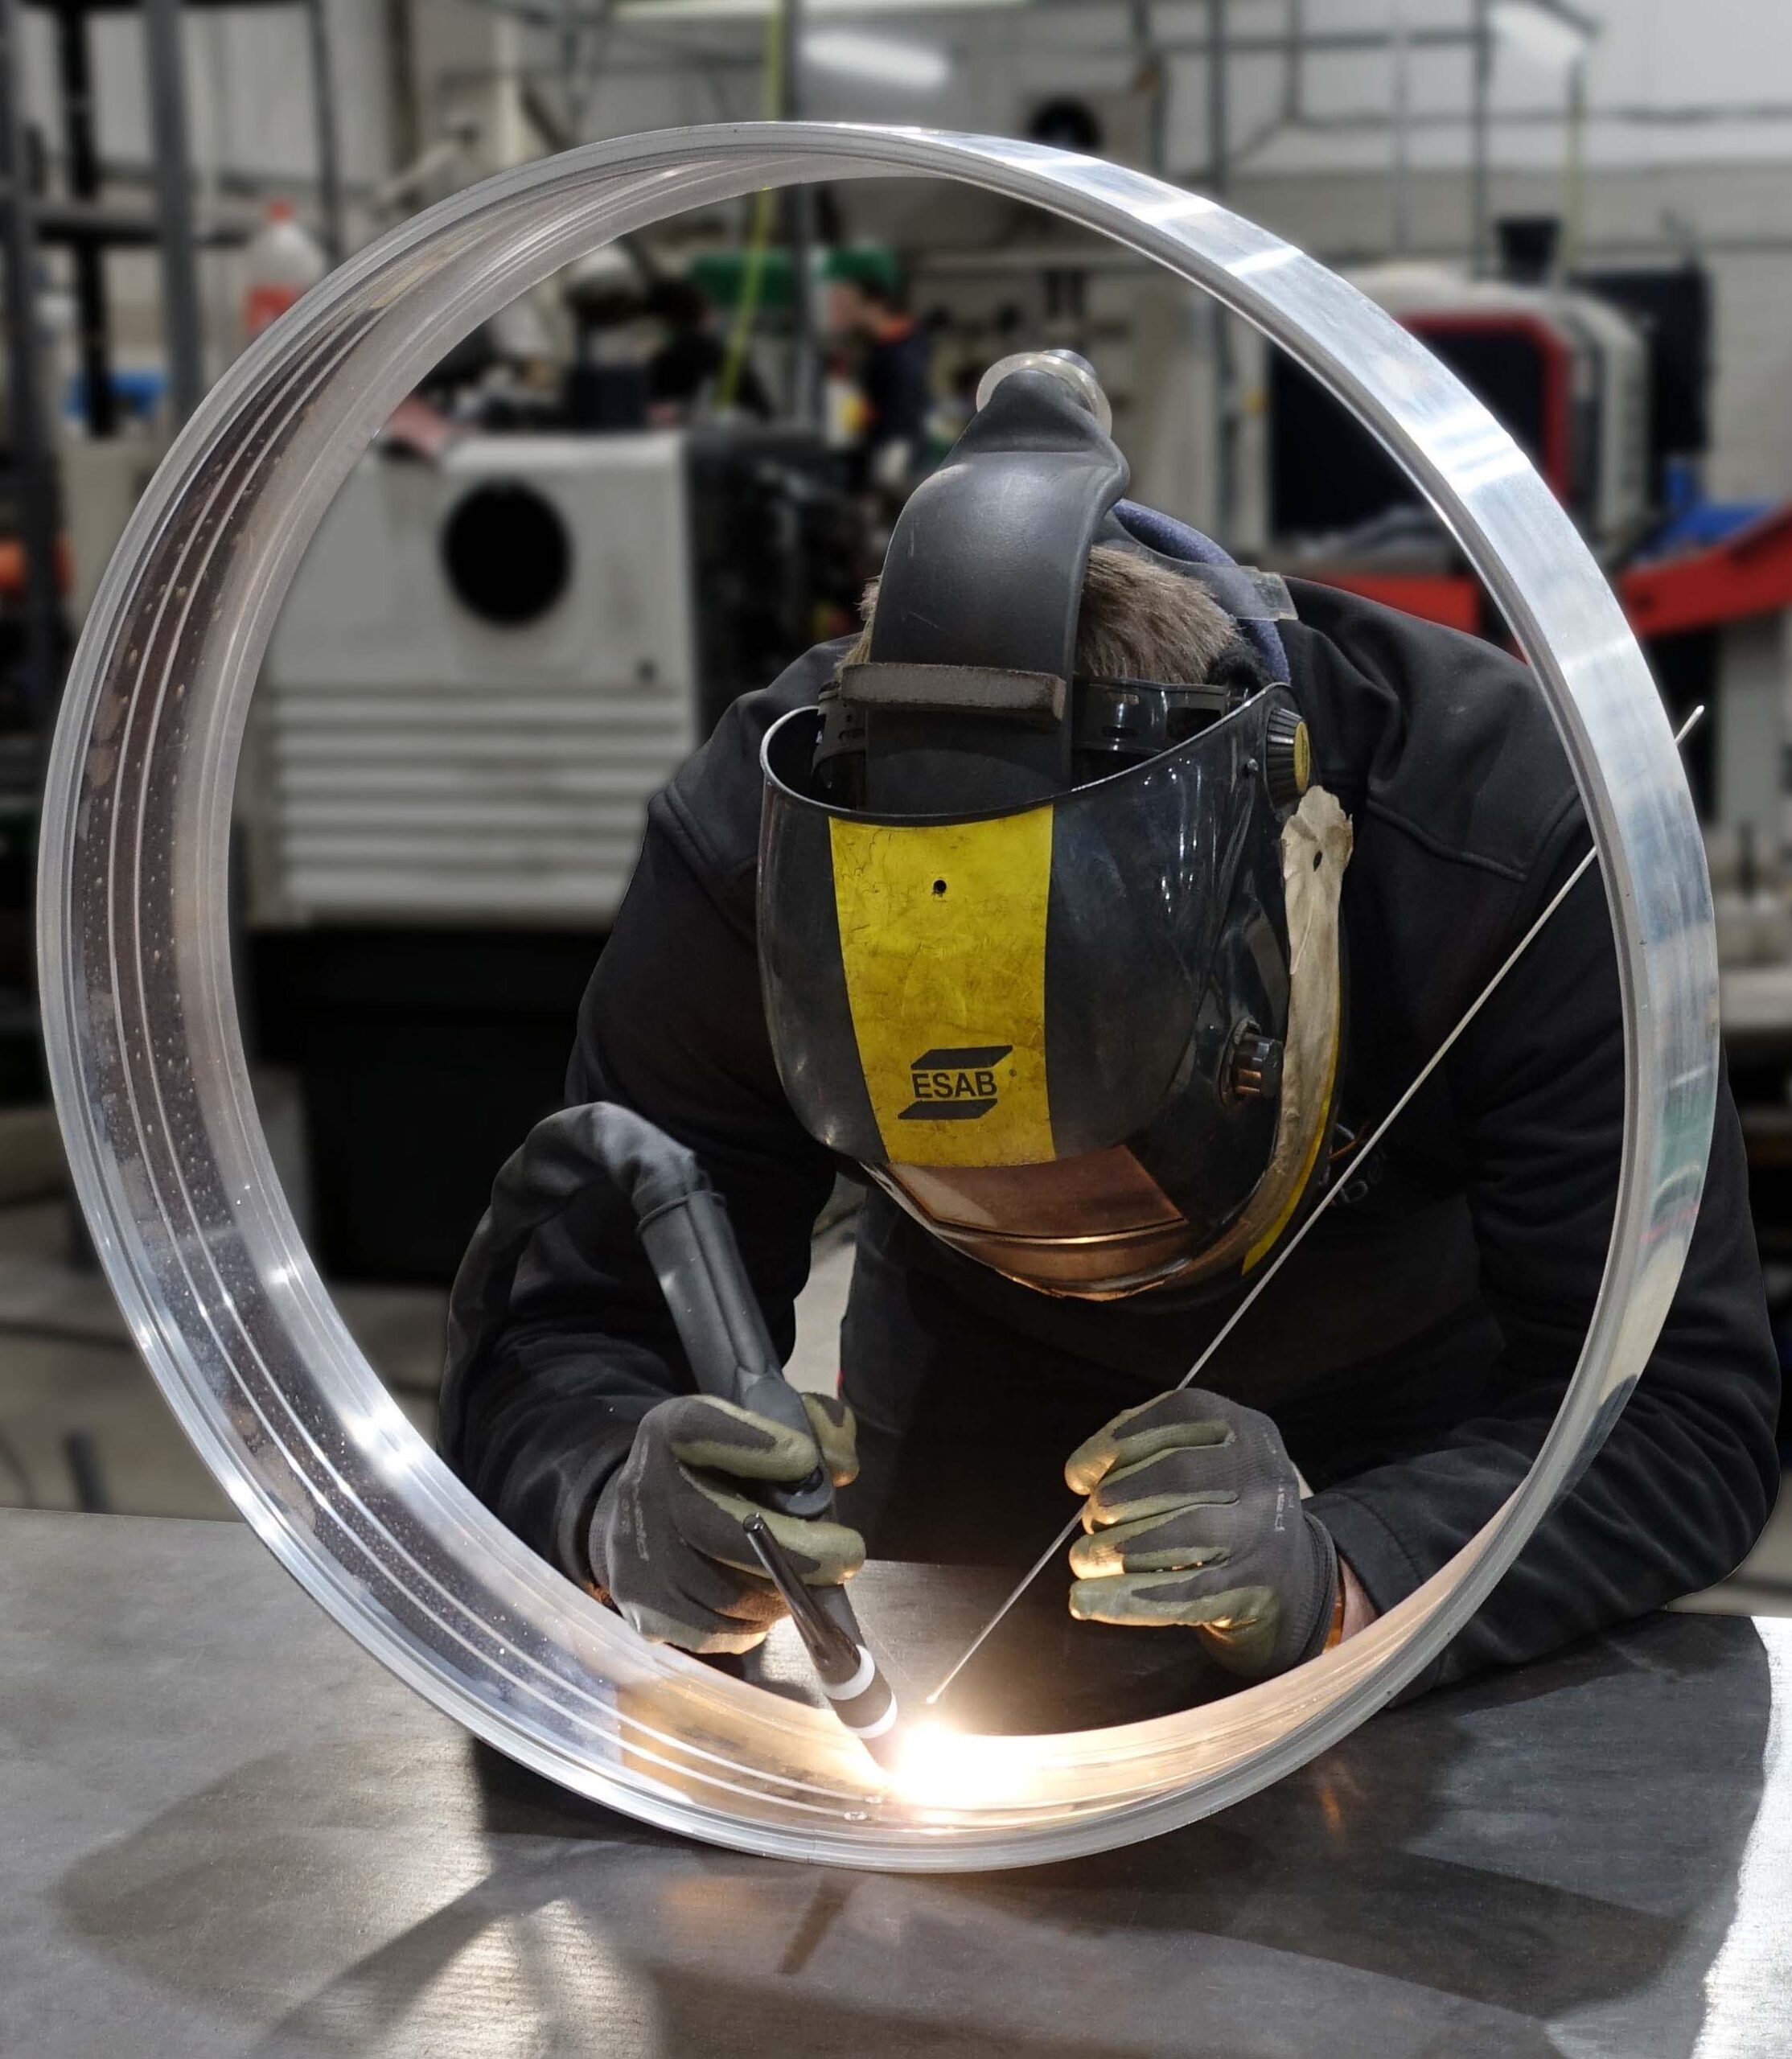 Curved Aluminium Circle being Welded